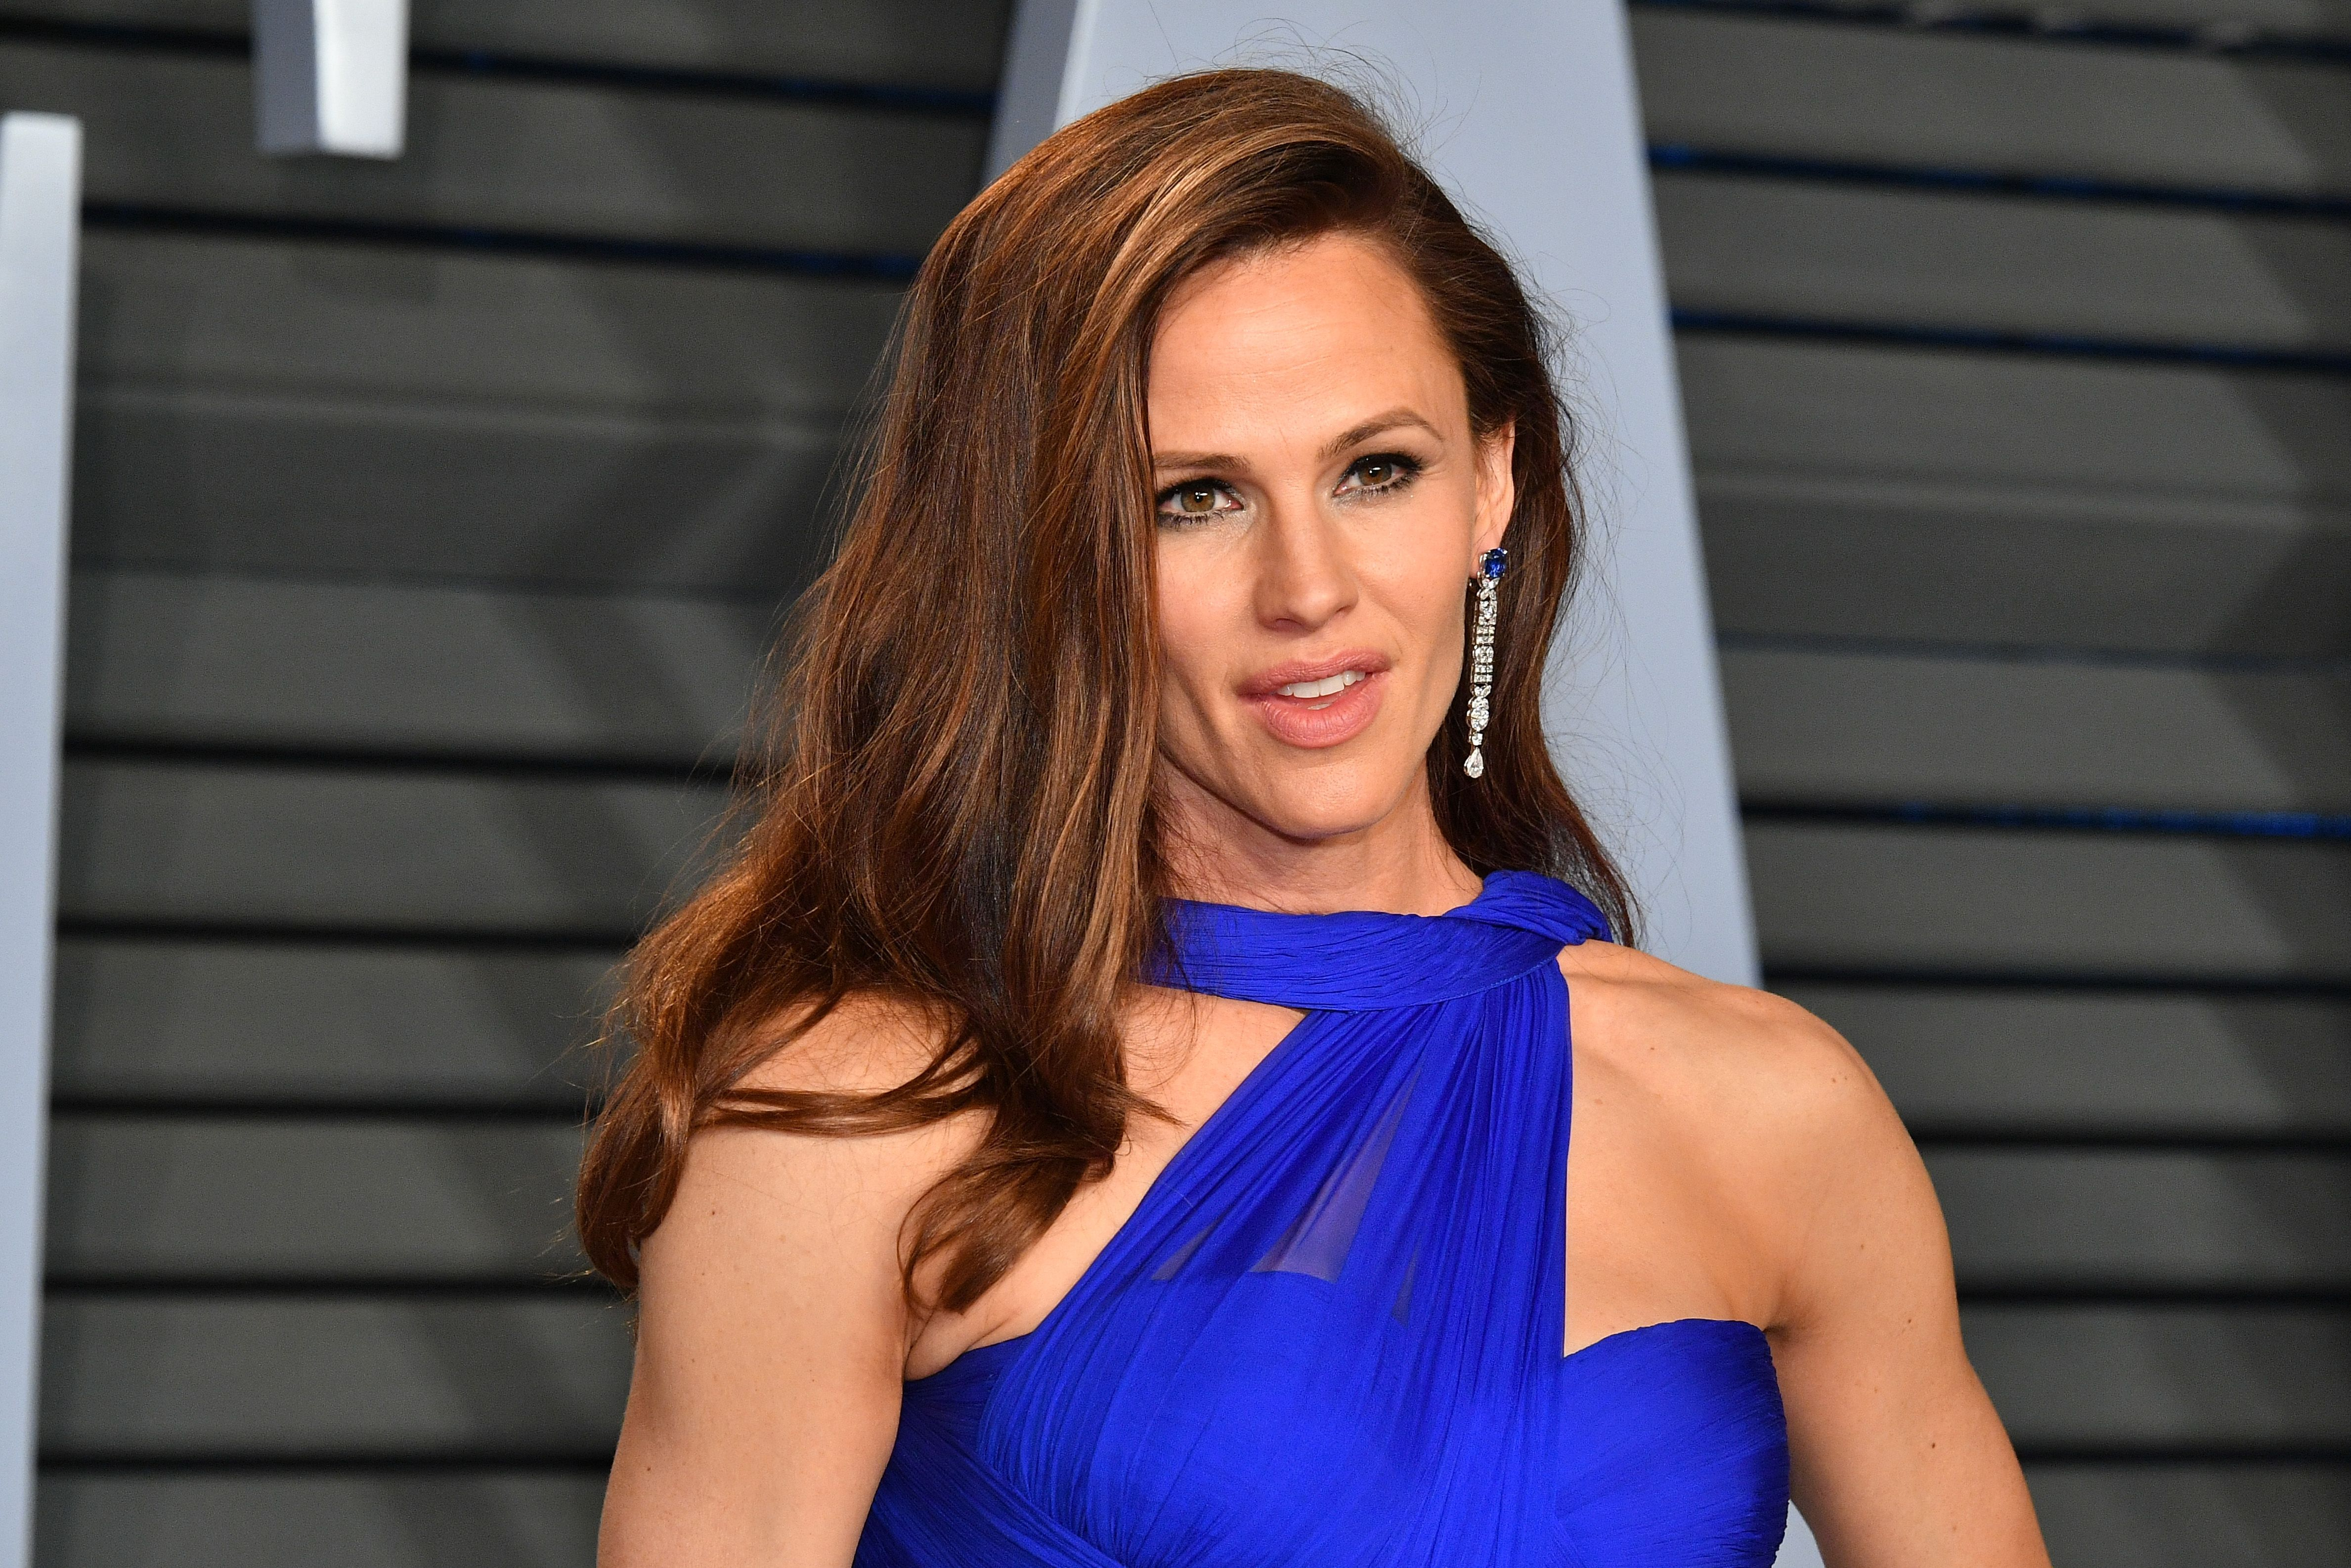 Jennifer Garner at the 2018 Vanity Fair Oscar Party hosted by Radhika Jones at Wallis Annenberg Center for the Performing Arts on March 4, 2018 | Photo: Getty Images